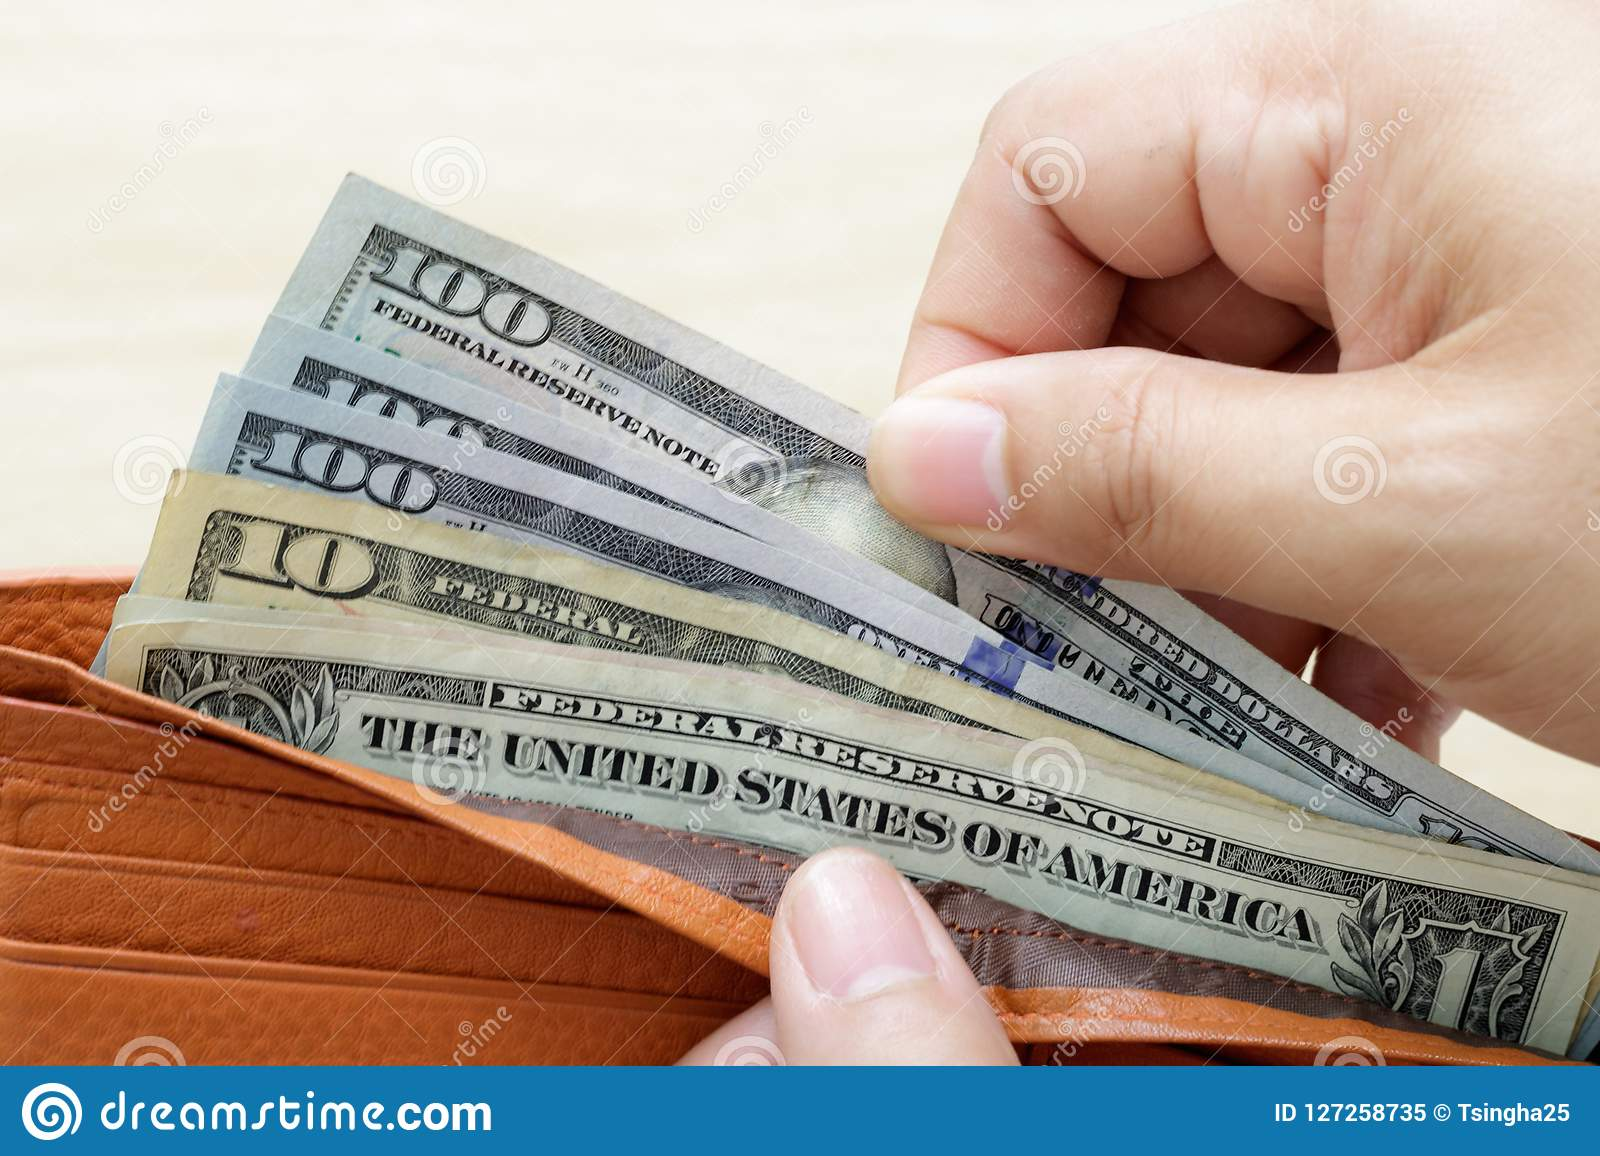 Hand holding wallet with US Dollar banknote and taking out money